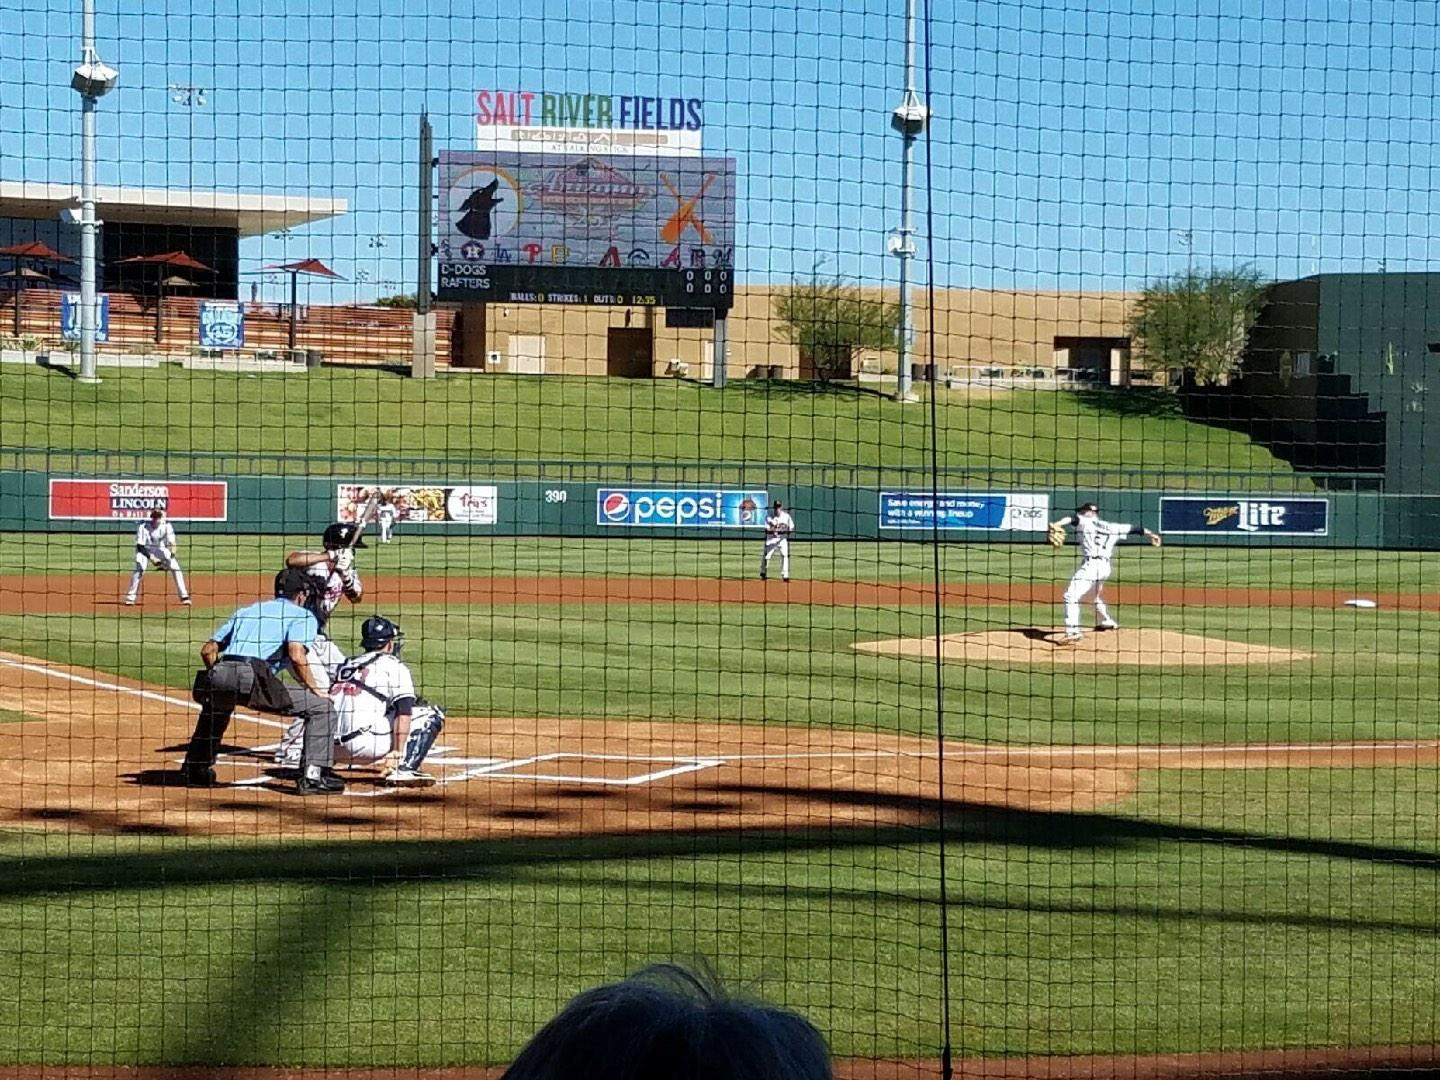 Salt River Fields Section 110 Row 7 Seat 3